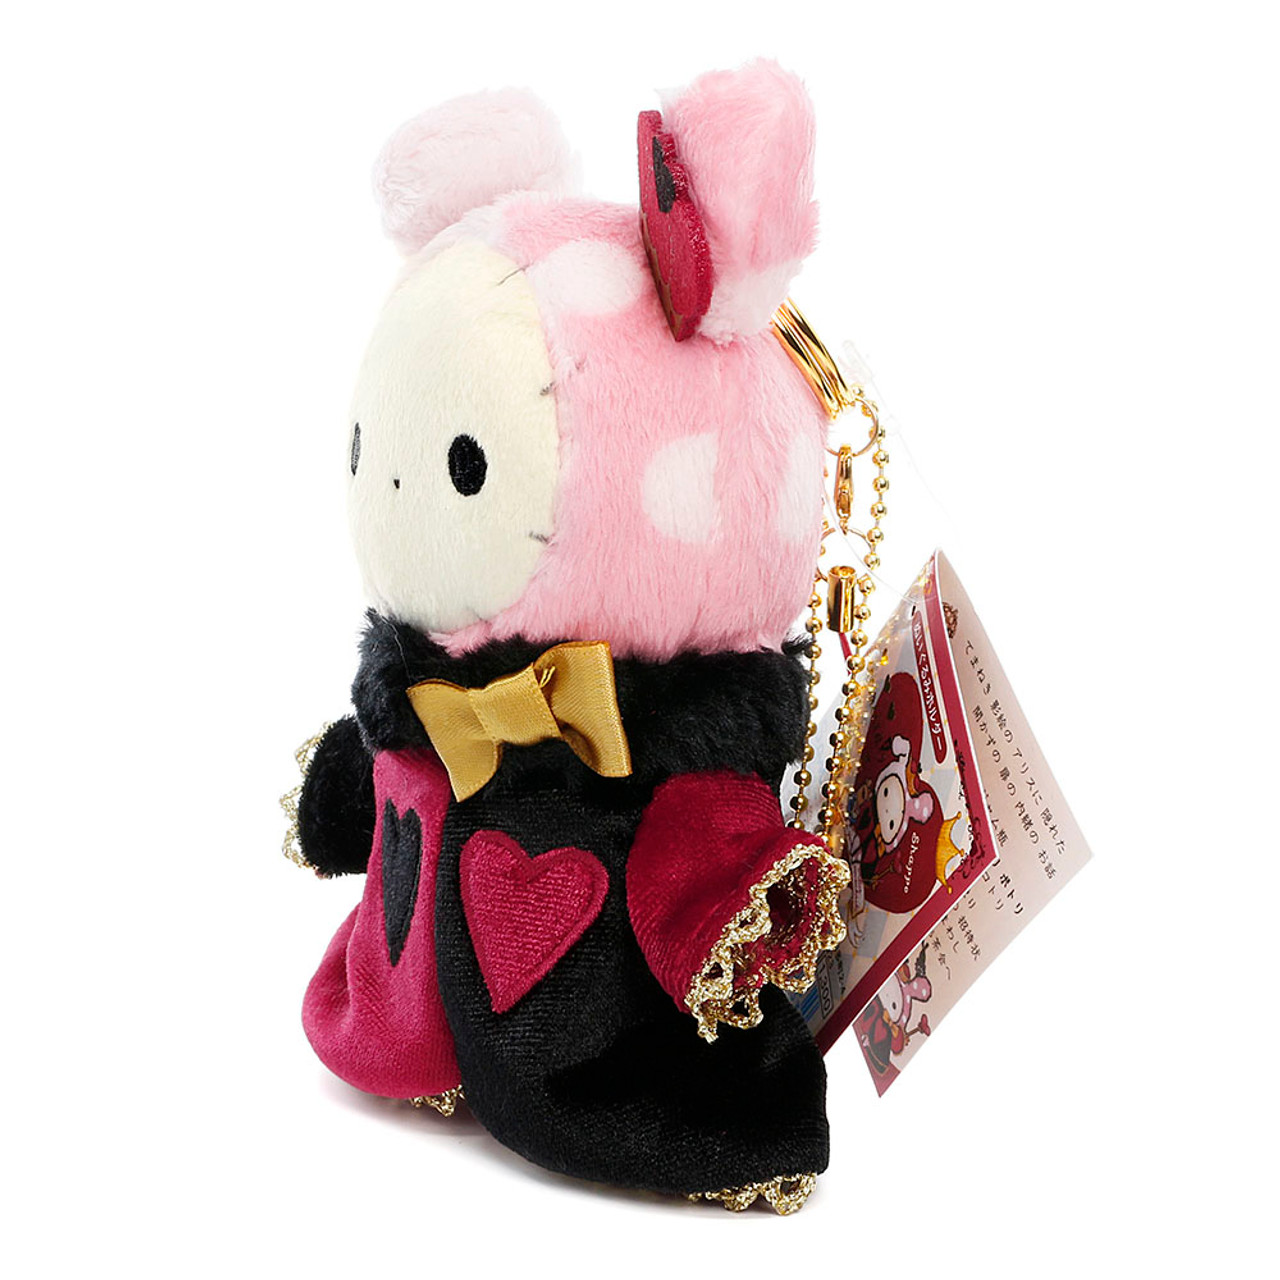 San-x Sentimental Circus Shappo Bunny Queen of Hearts Plush Doll Charms ( Side View )